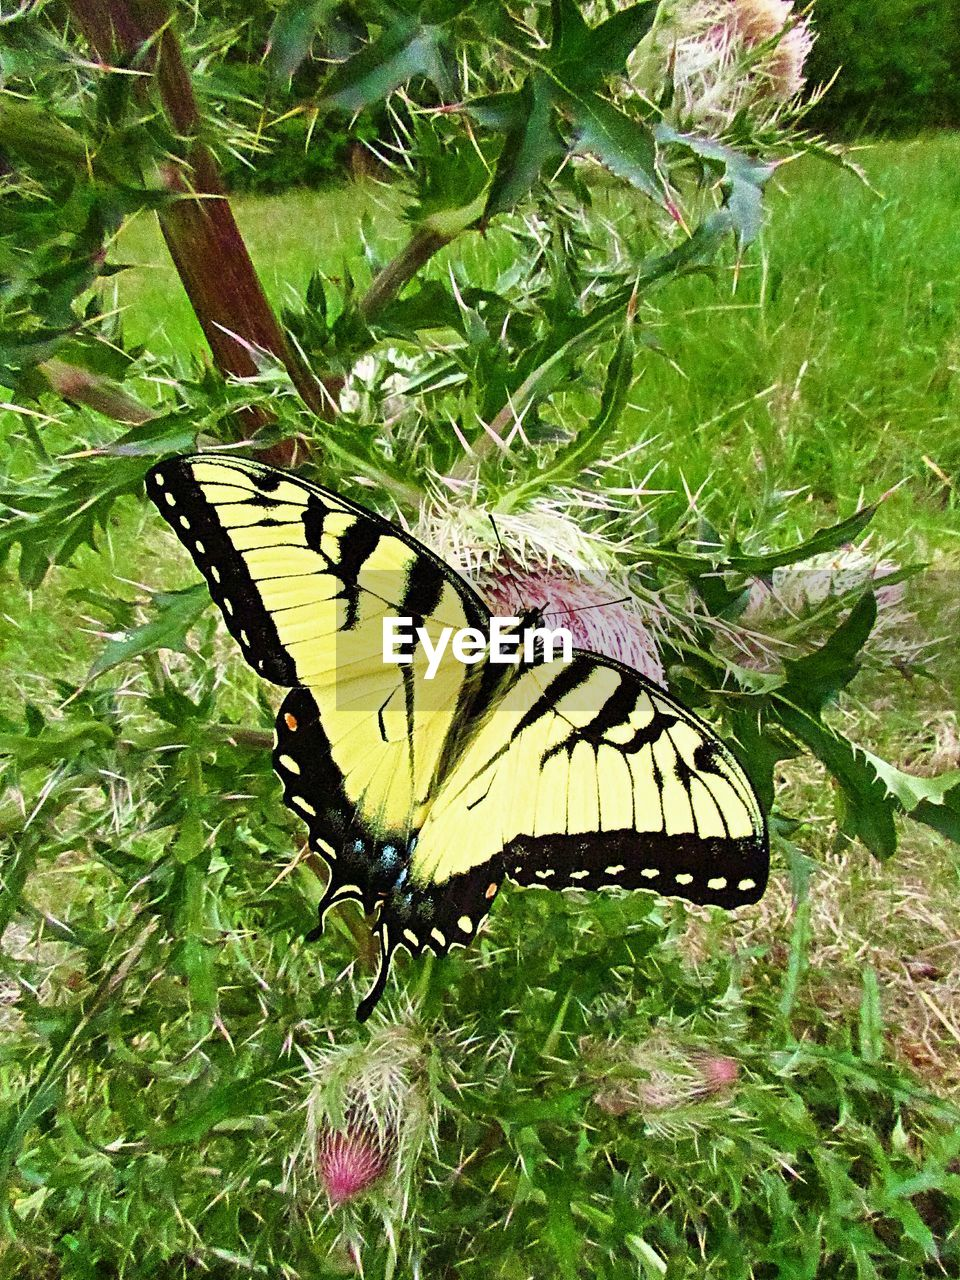 animal wildlife, animal themes, butterfly - insect, animal wing, animals in the wild, insect, animal, invertebrate, beauty in nature, plant, one animal, flower, nature, plant part, leaf, close-up, no people, day, growth, green color, outdoors, butterfly, pollination